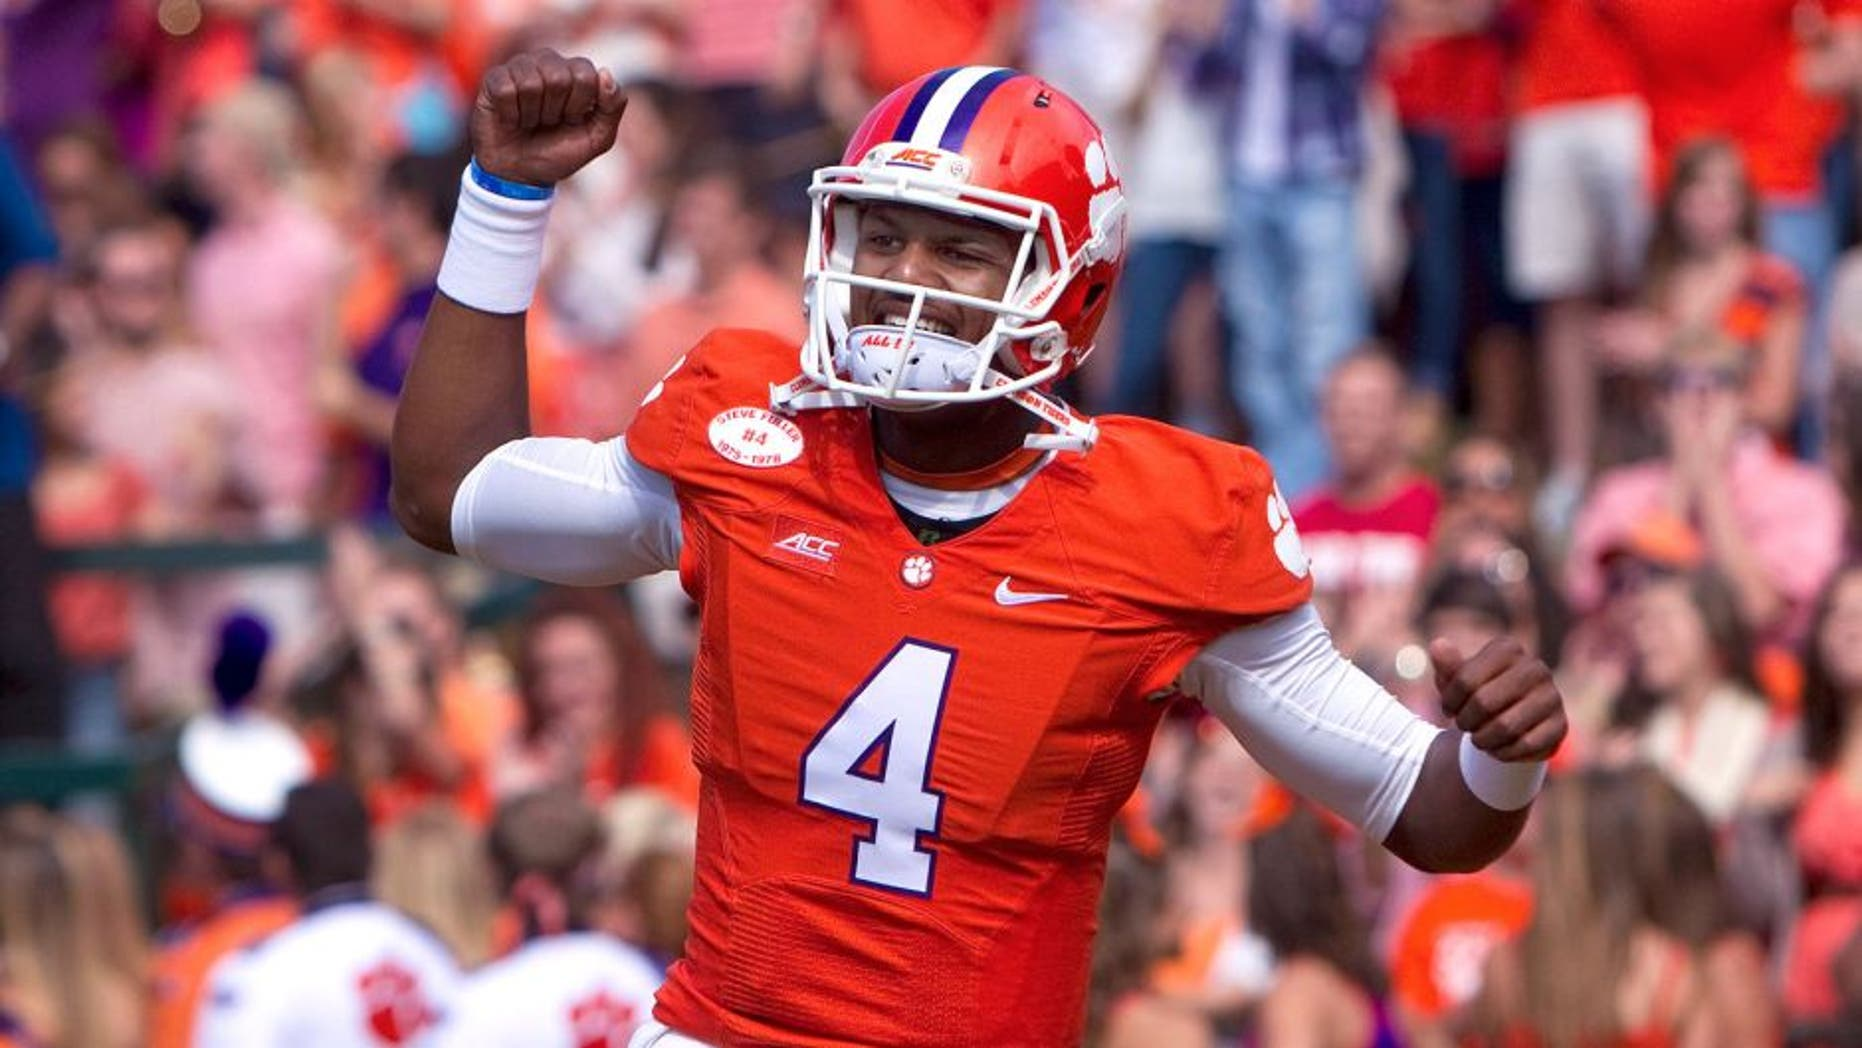 Oct 4, 2014; Clemson, SC, USA; Clemson Tigers quarterback Deshaun Watson (4) reacts during the first quarter against the North Carolina State Wolfpack at Clemson Memorial Stadium. Mandatory Credit: Joshua S. Kelly-USA TODAY Sports